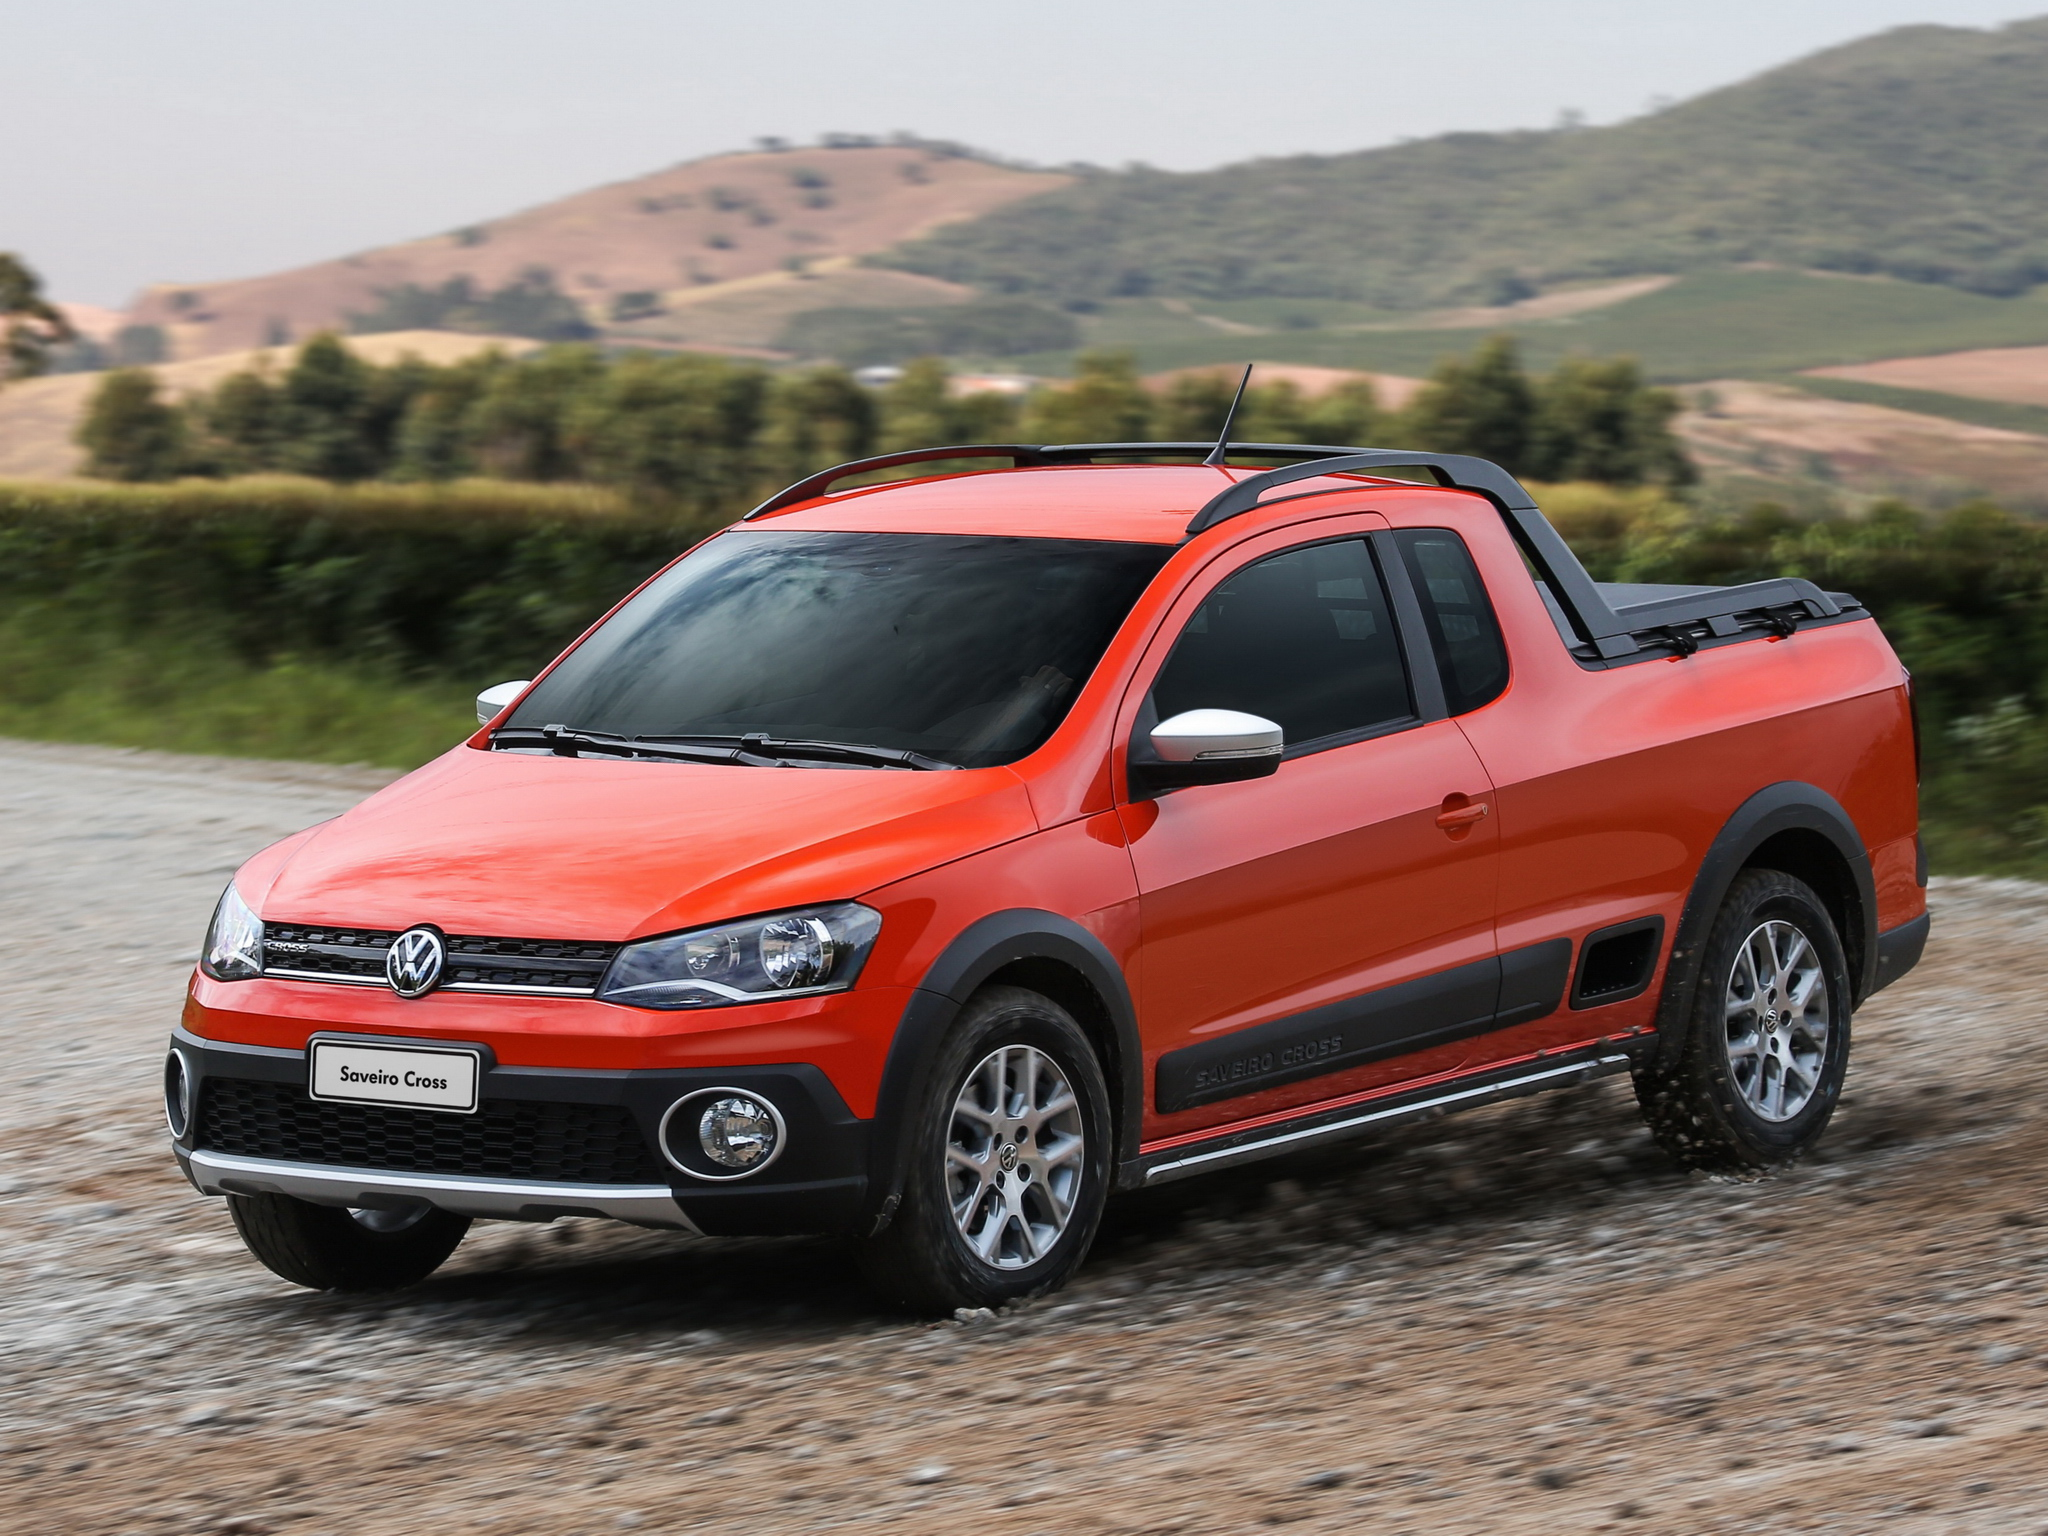 2014 volkswagen saveiro cross is a funky brazilian pickup. Black Bedroom Furniture Sets. Home Design Ideas